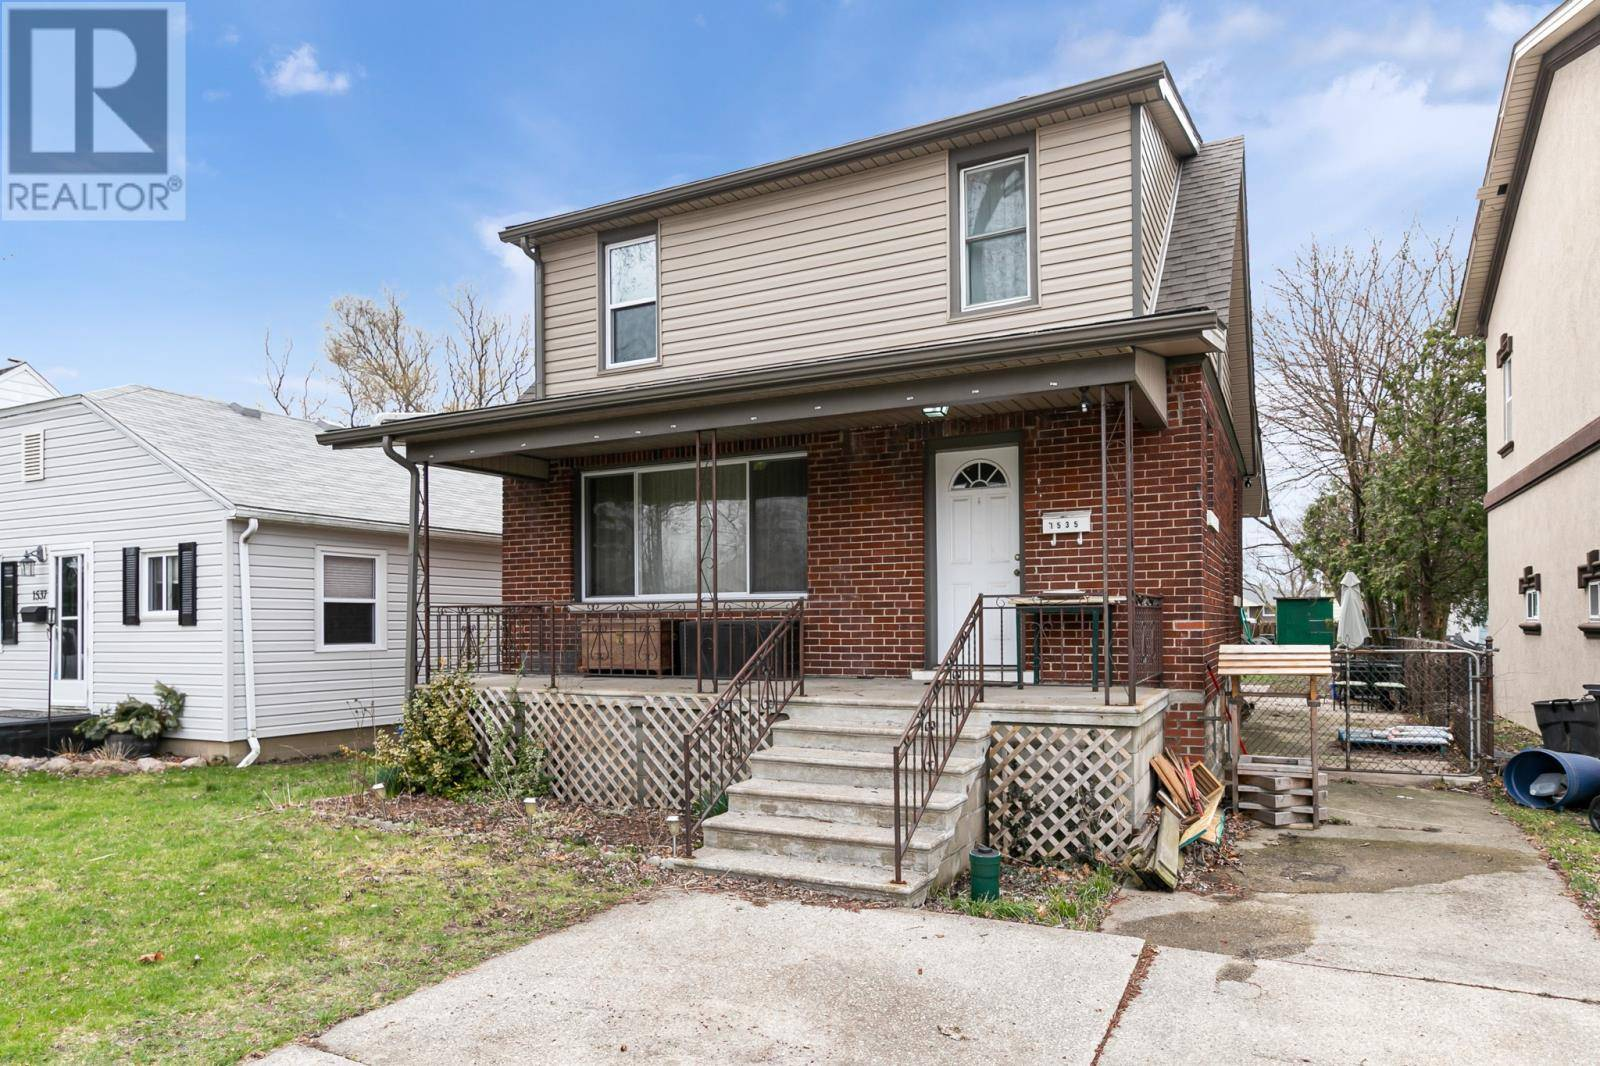 House for sale at 1535 Rossini  Windsor Ontario - MLS: 20003913